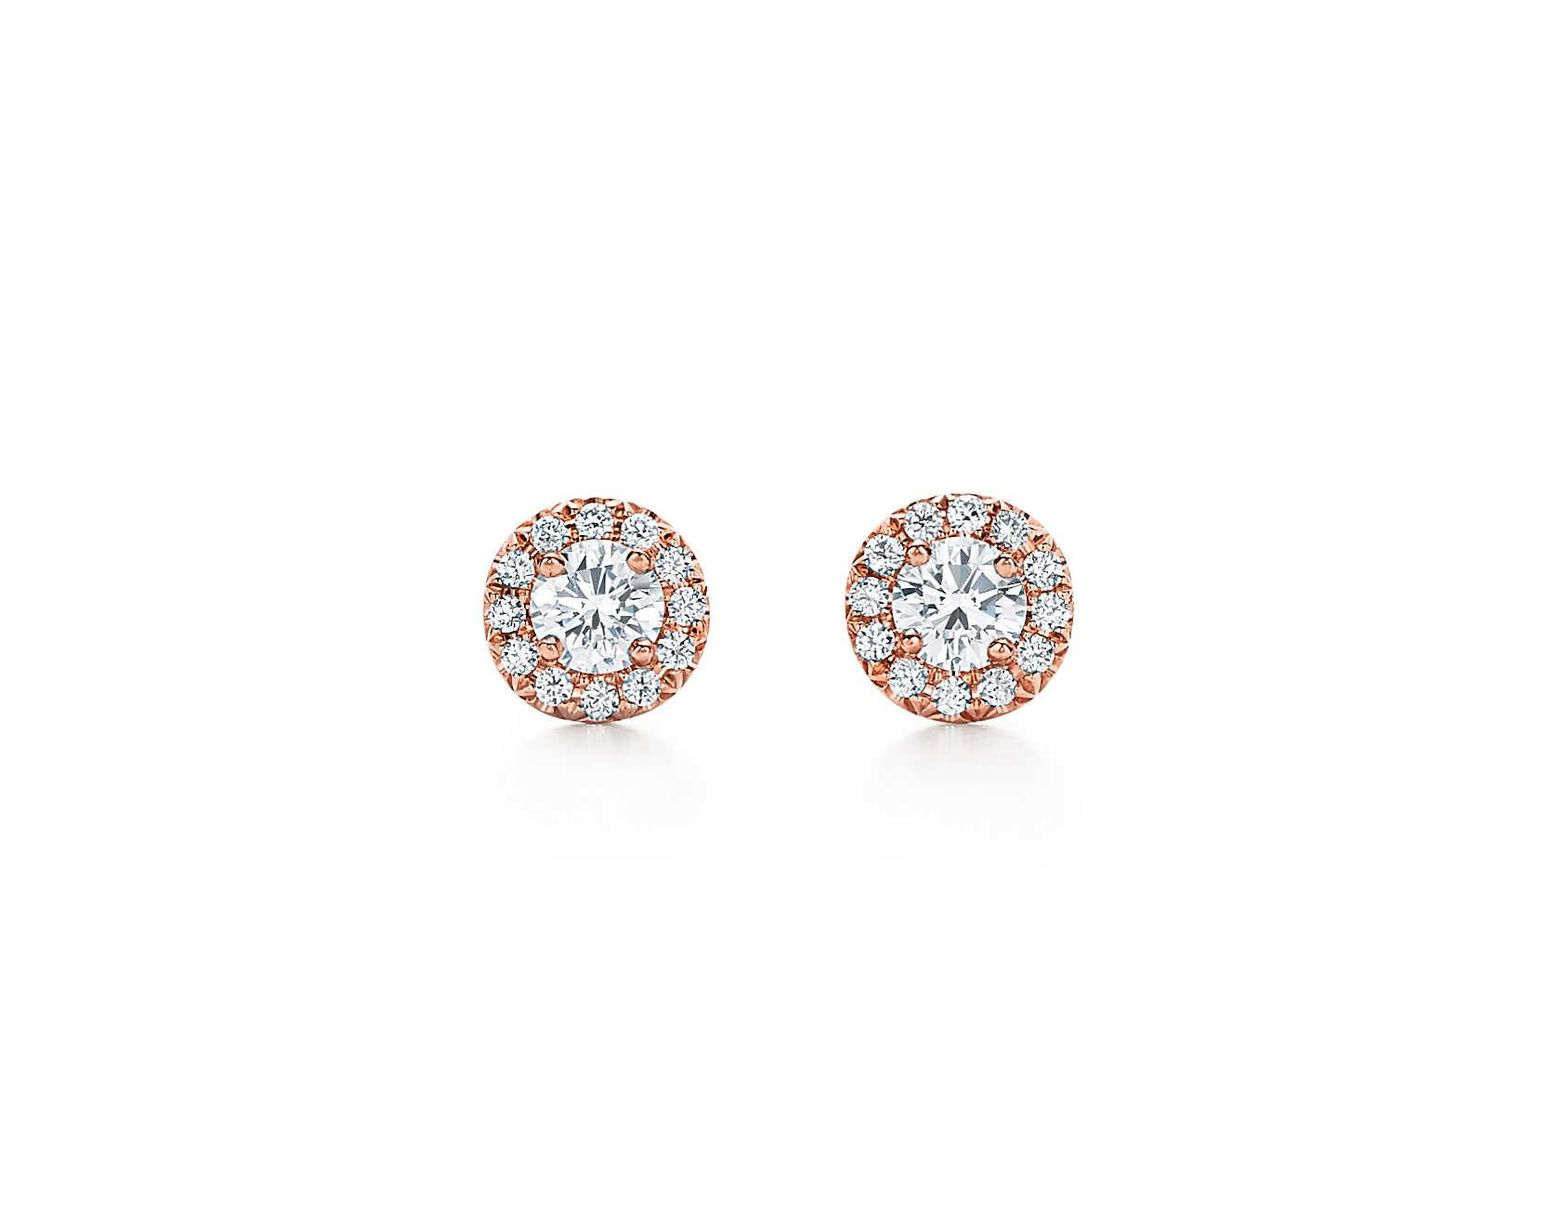 93c2b0e08 Tiffany & Co. Tiffany Circlet Earrings In 18ct Rose Gold With Diamonds,  Mini in Metallic - Save 31% - Lyst